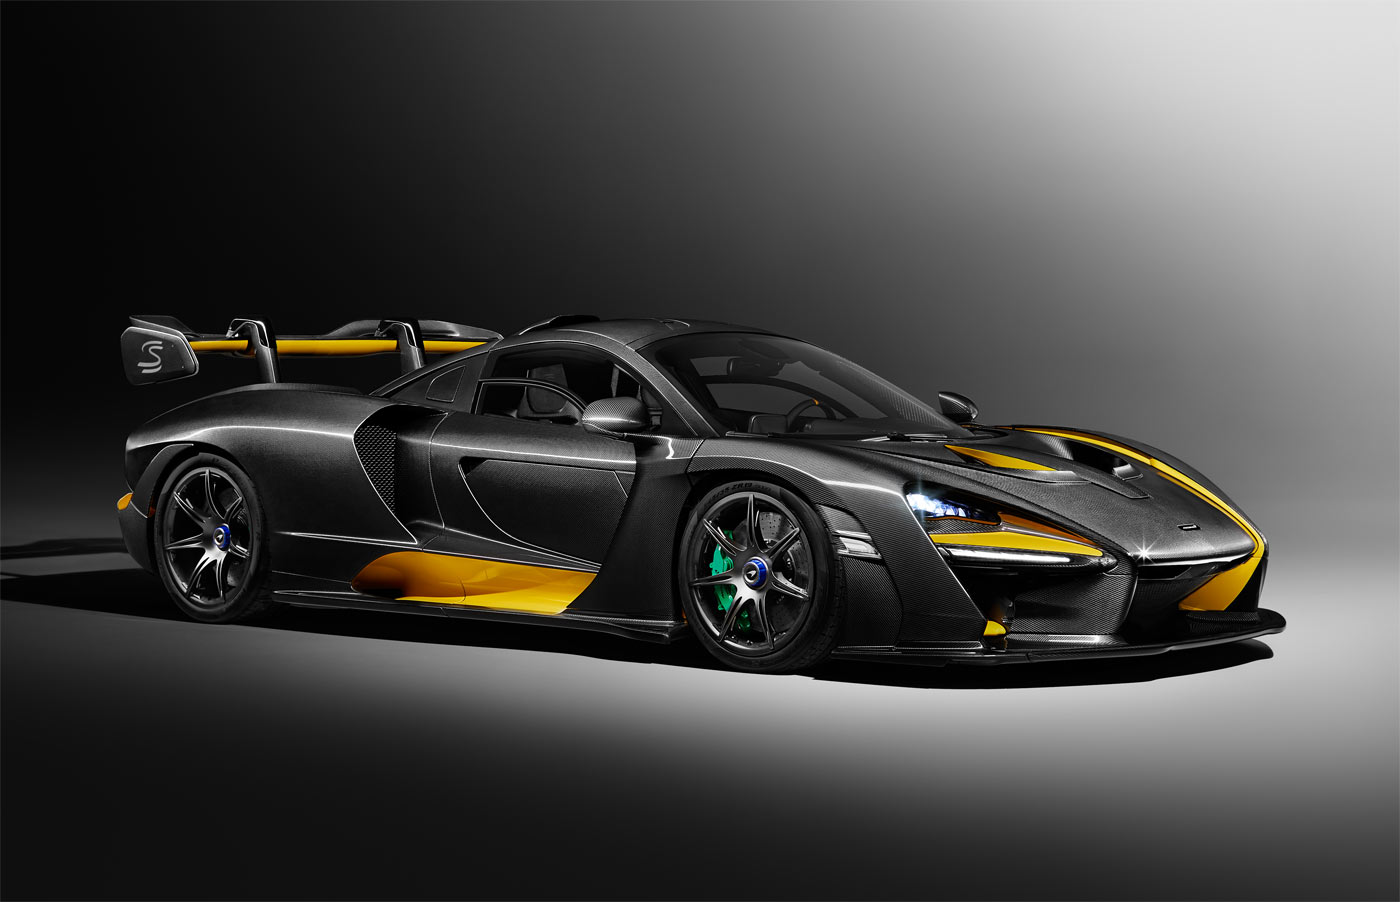 The MSO designed carbon theme Senna will be on show at the Geneva motor show